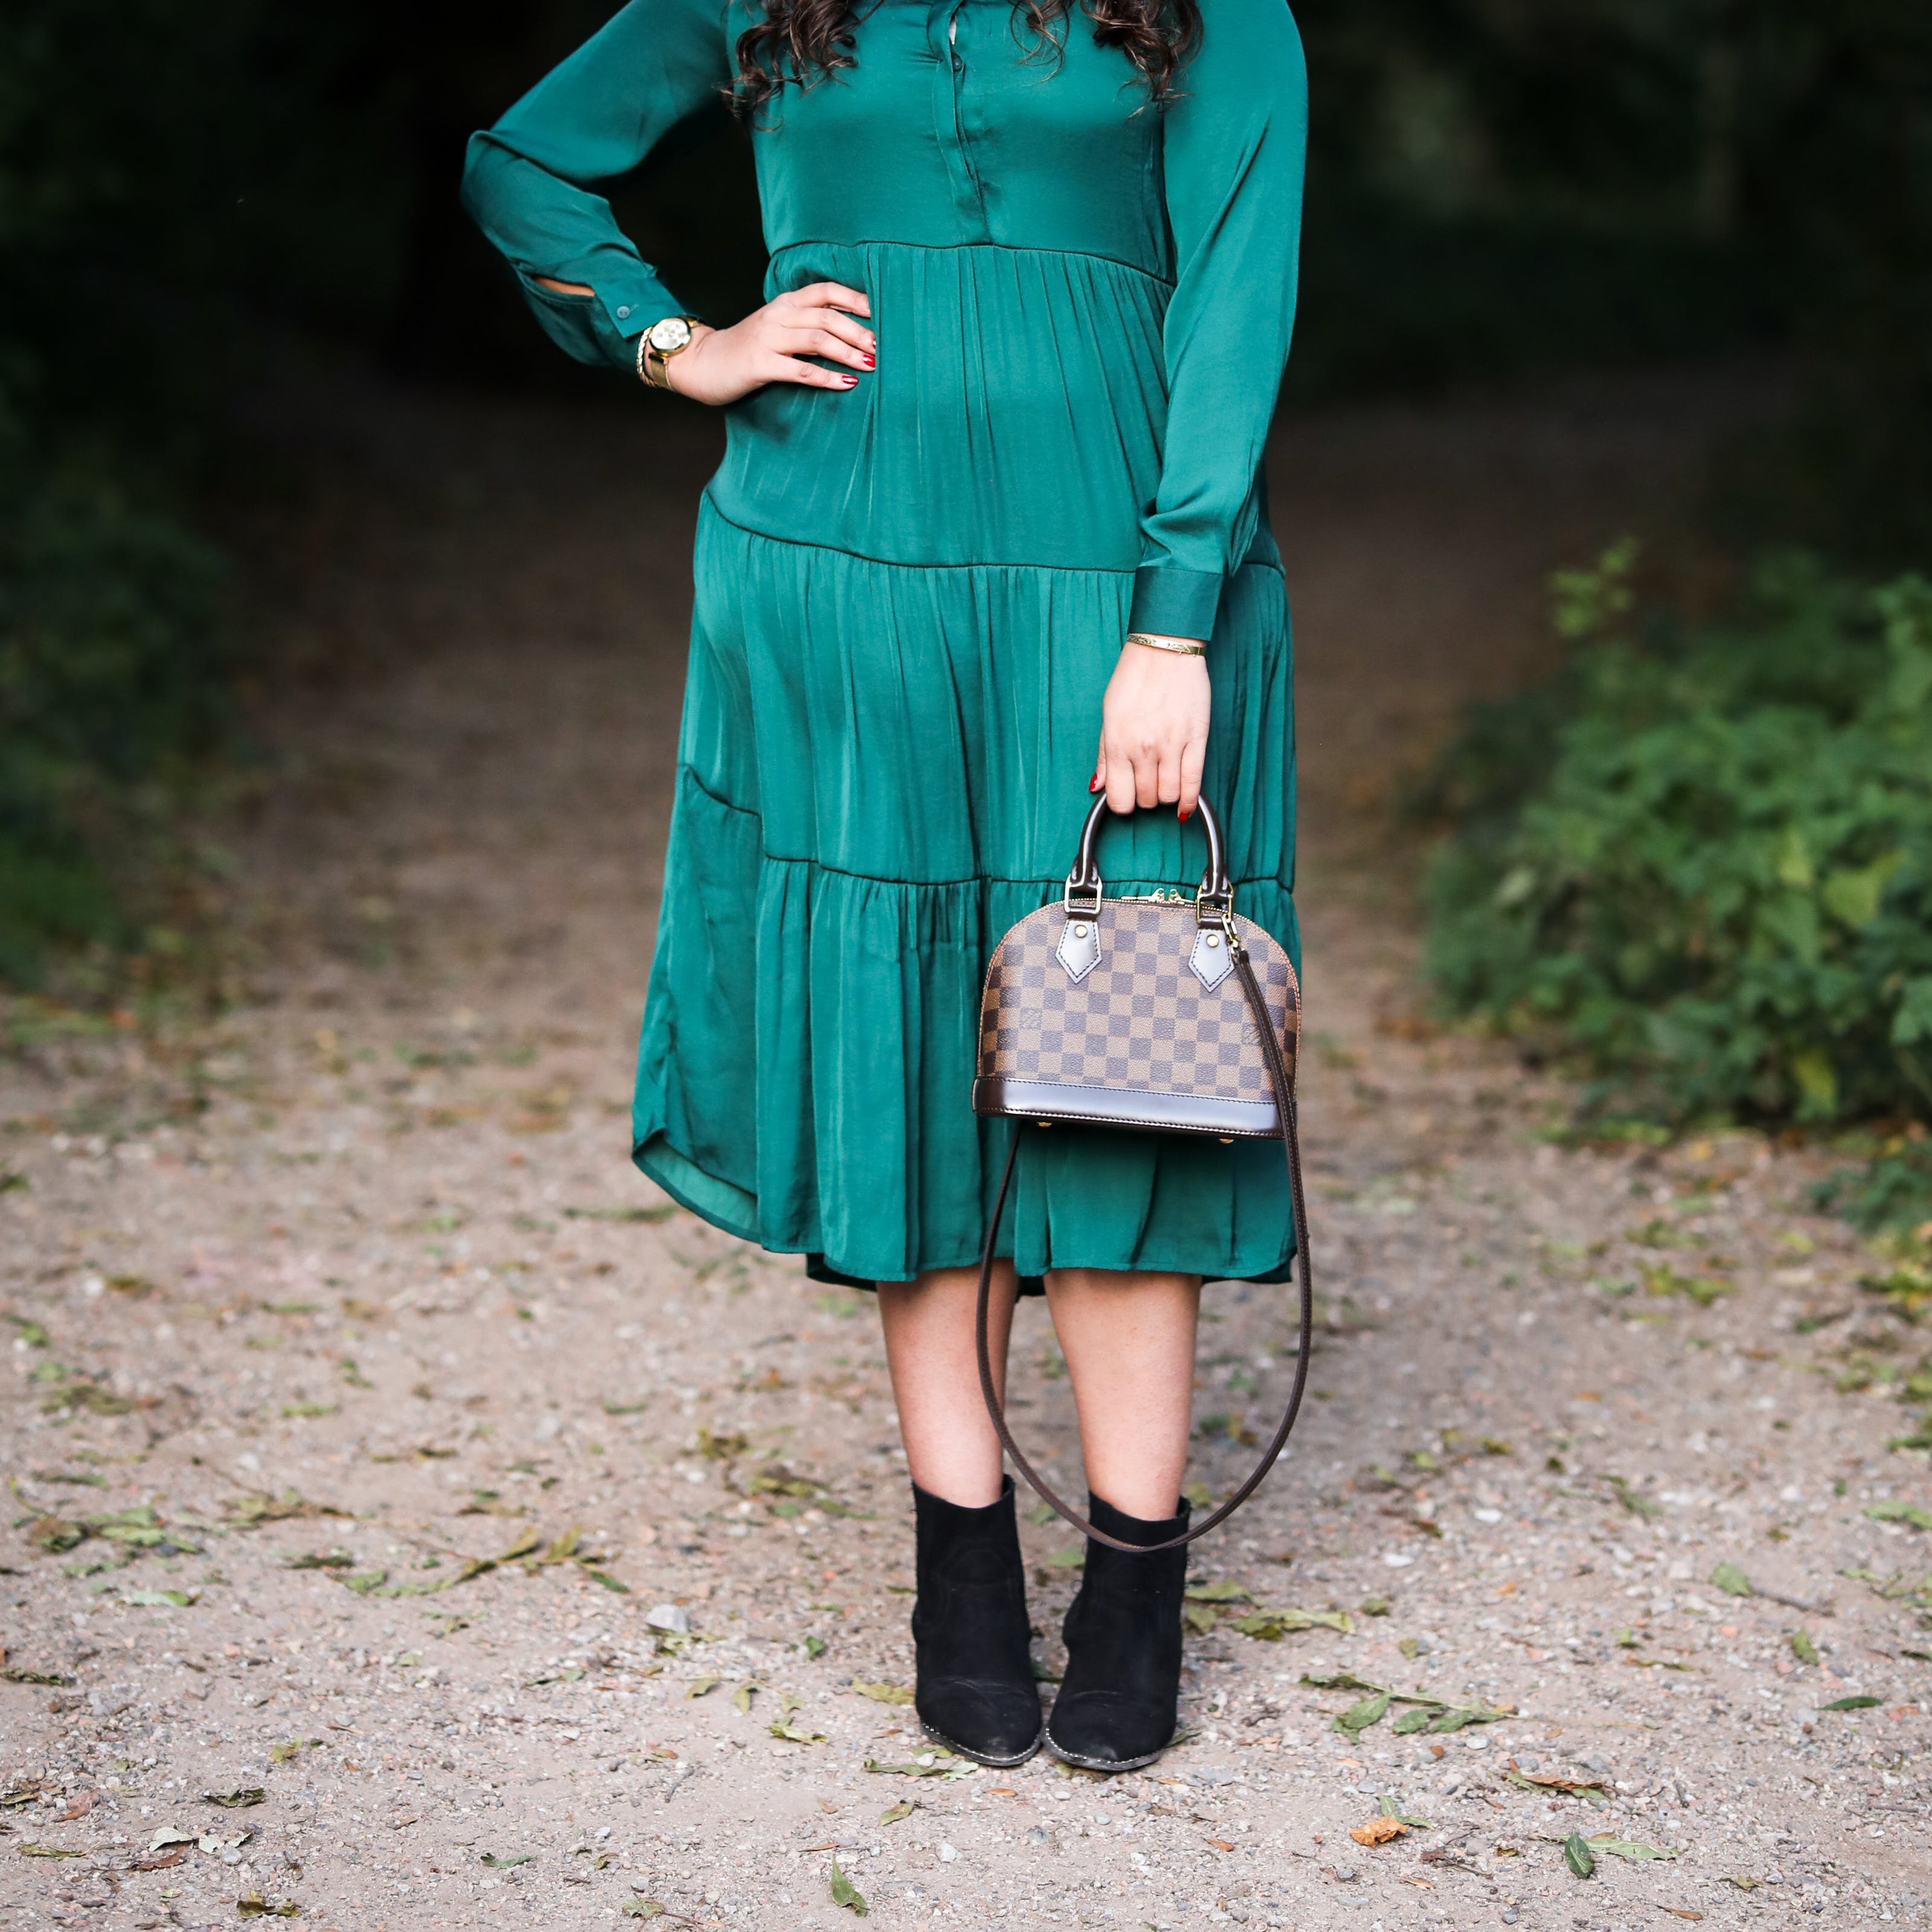 Photograph of a woman from her shoulders to her feet, wearing an emerald green dress with a shiny lustre. She is standing with her right hand on her hip and in her left hand she is holding a small hand bag in front of her left leg. In the background can be seen a park or woodland scene with a footpath disappearing into the distance. On either side of the path is green vegetation.